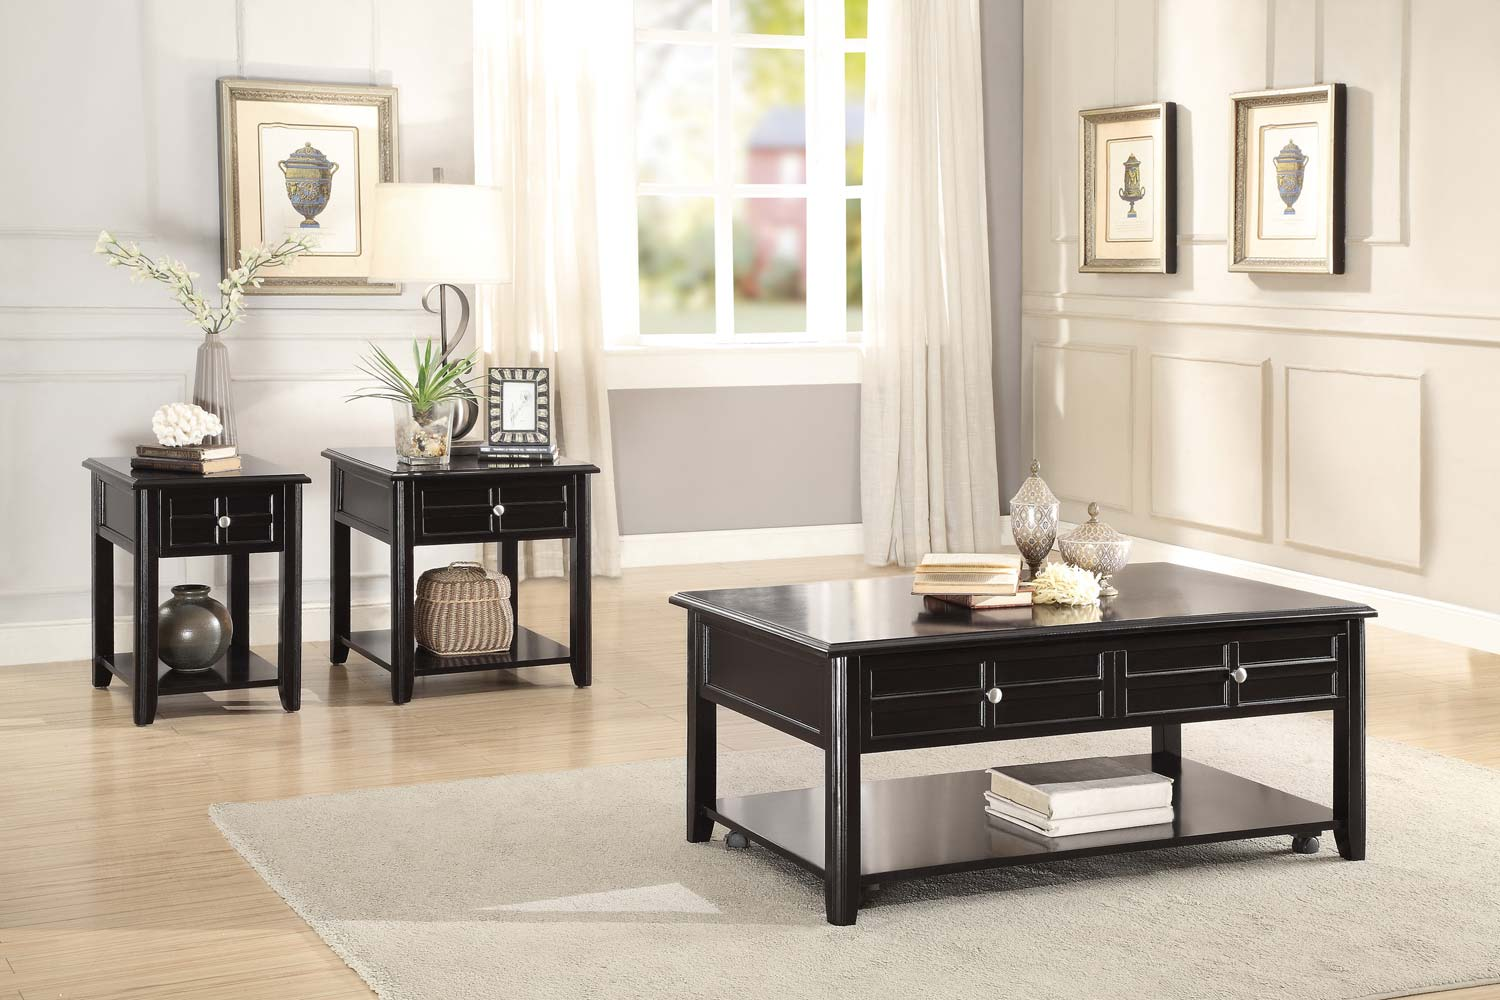 Homelegance Carrier Cocktail/Coffee Table Set - Dark Espresso